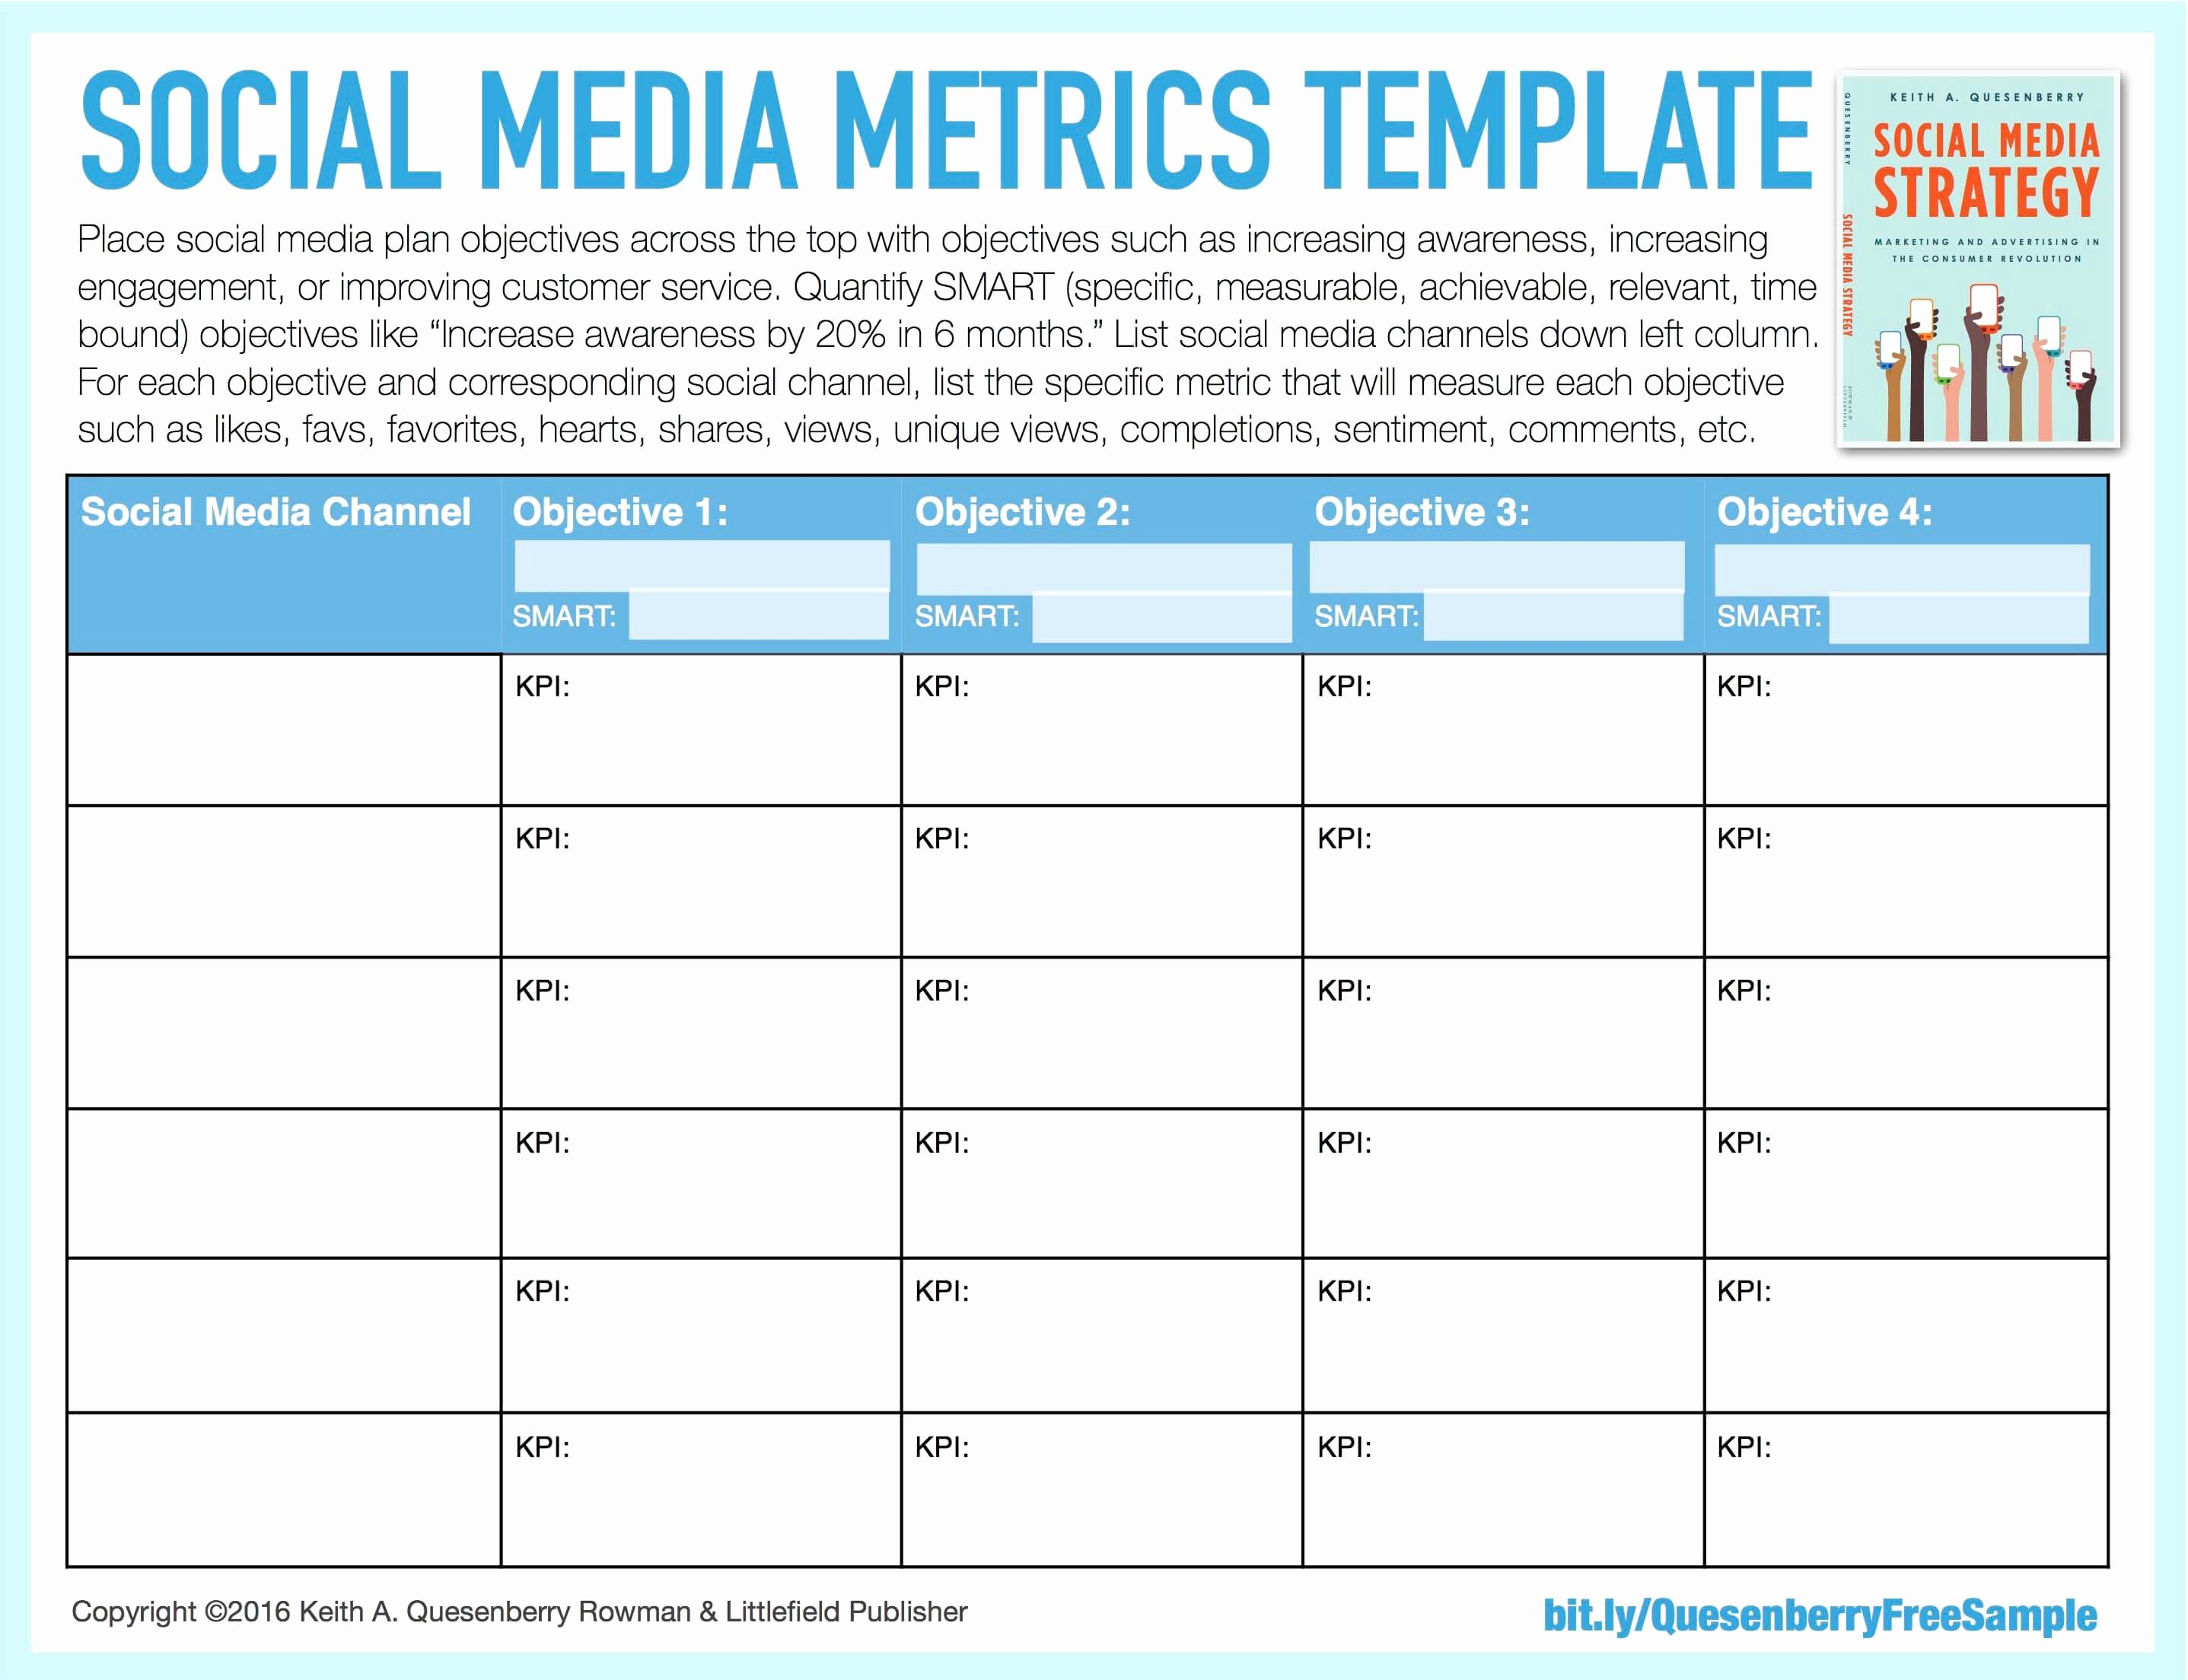 Social Media Strategy Template Pdf Elegant social Media Templates Keith A Quesenberry